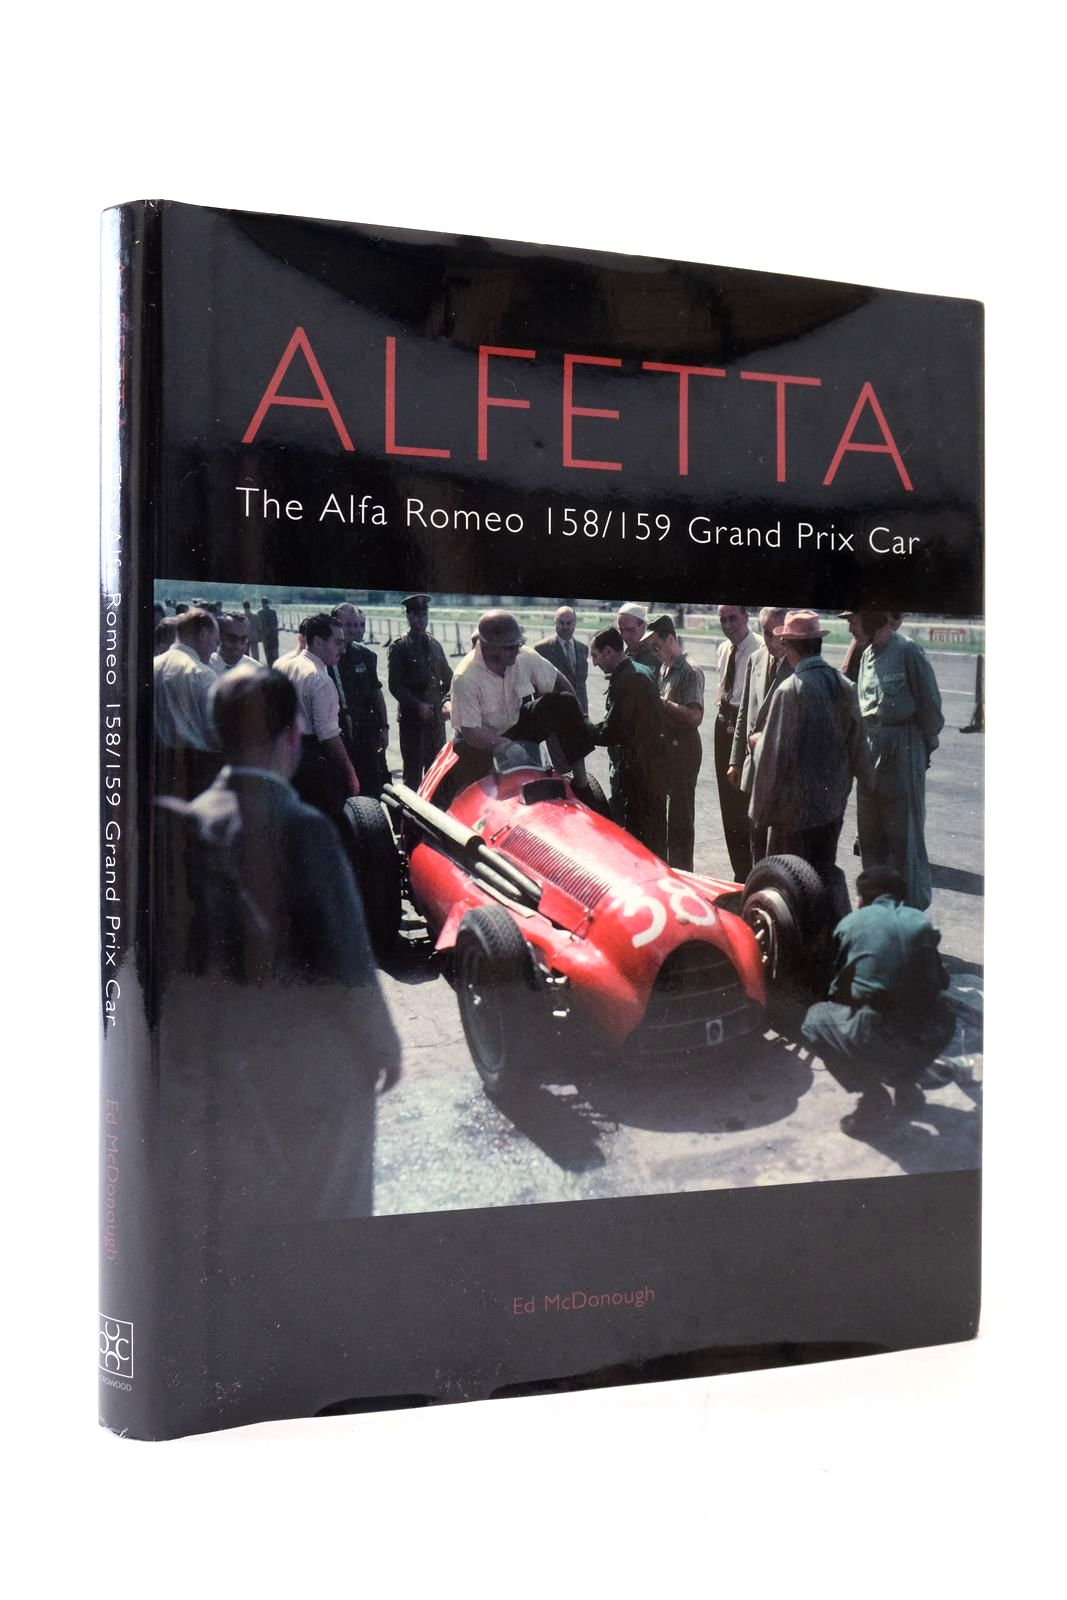 Photo of ALFETTA: THE ALFA ROMEO 158/159 GRAND PRIX CAR written by McDonough, Ed. published by The Crowood Press (STOCK CODE: 2135128)  for sale by Stella & Rose's Books